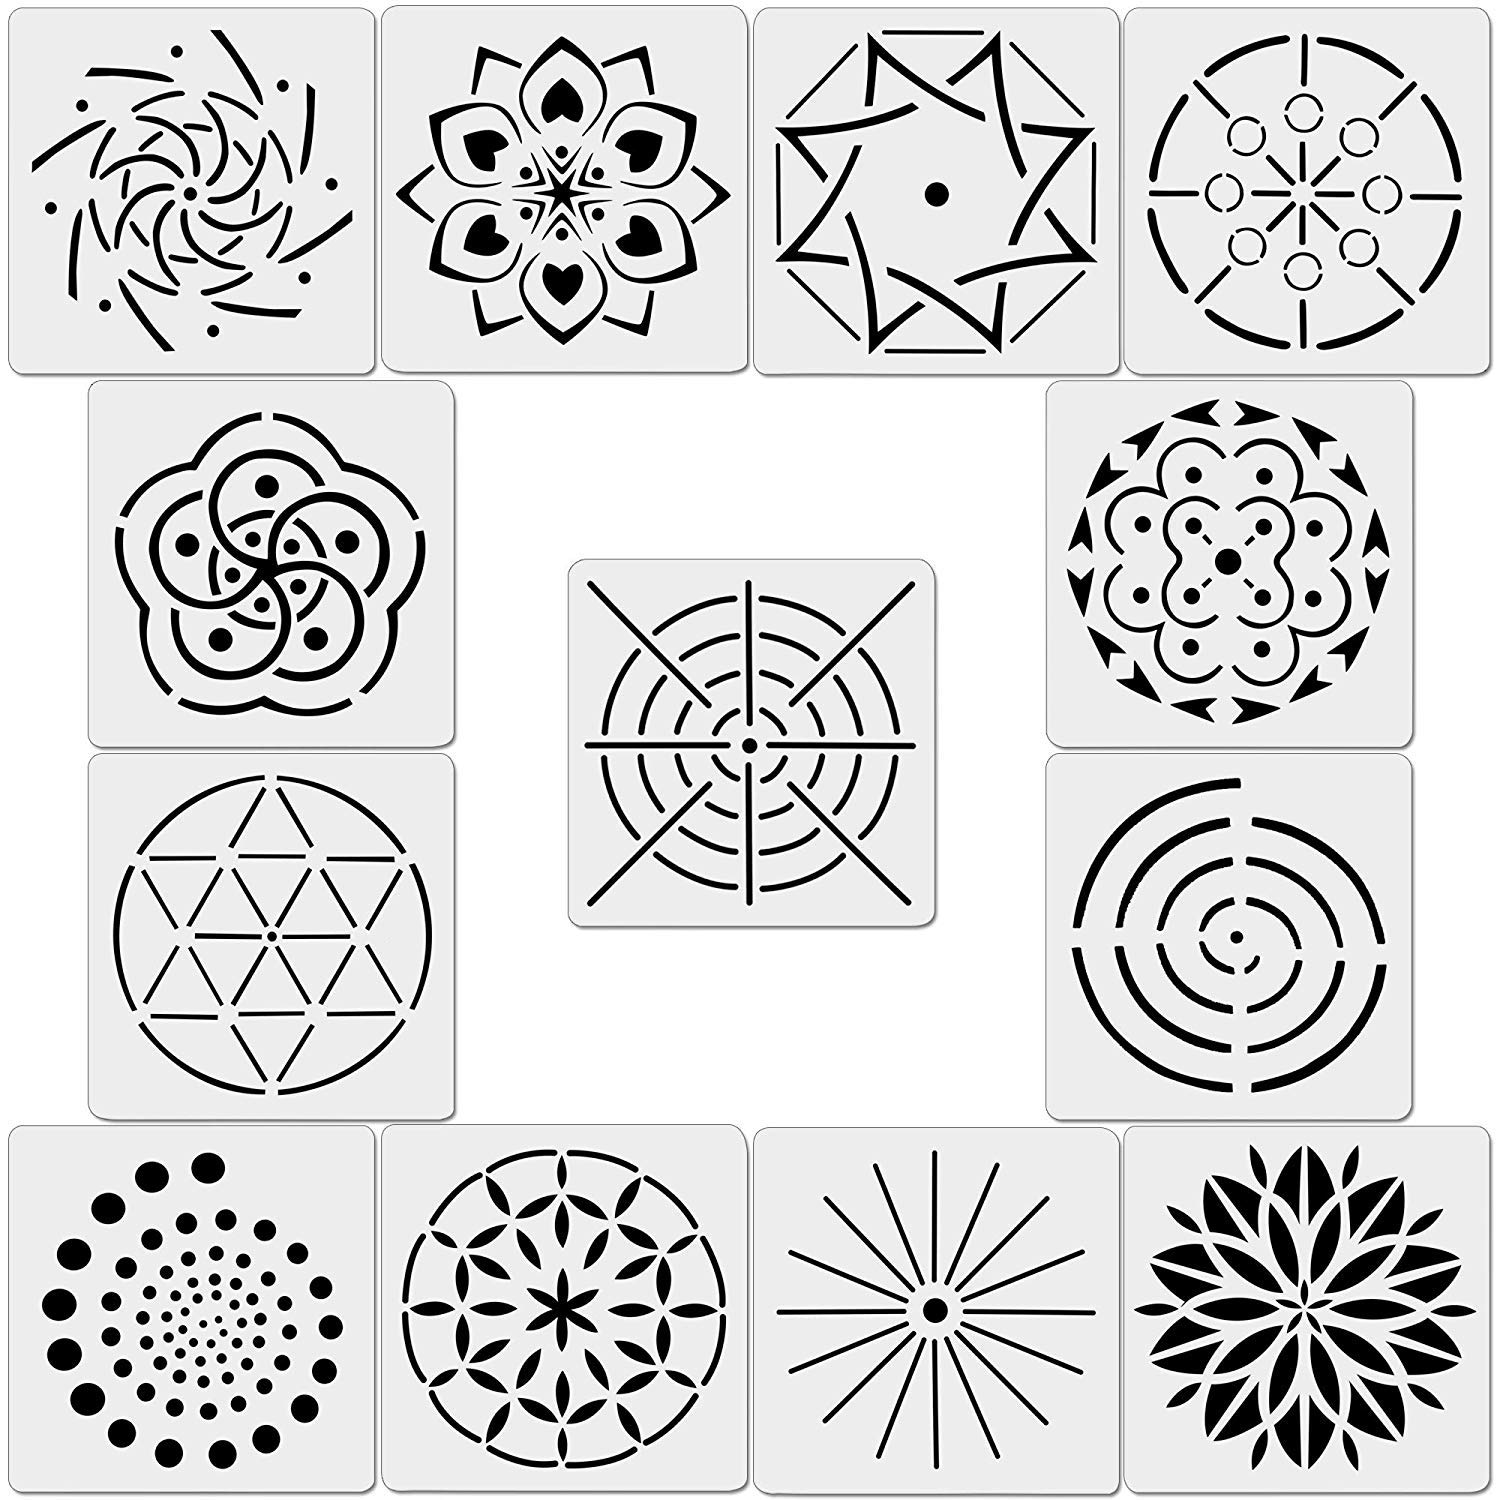 Angshop 13 Pack Mandala Dot Painting Templates Stencils for DIY Painting Art Projects